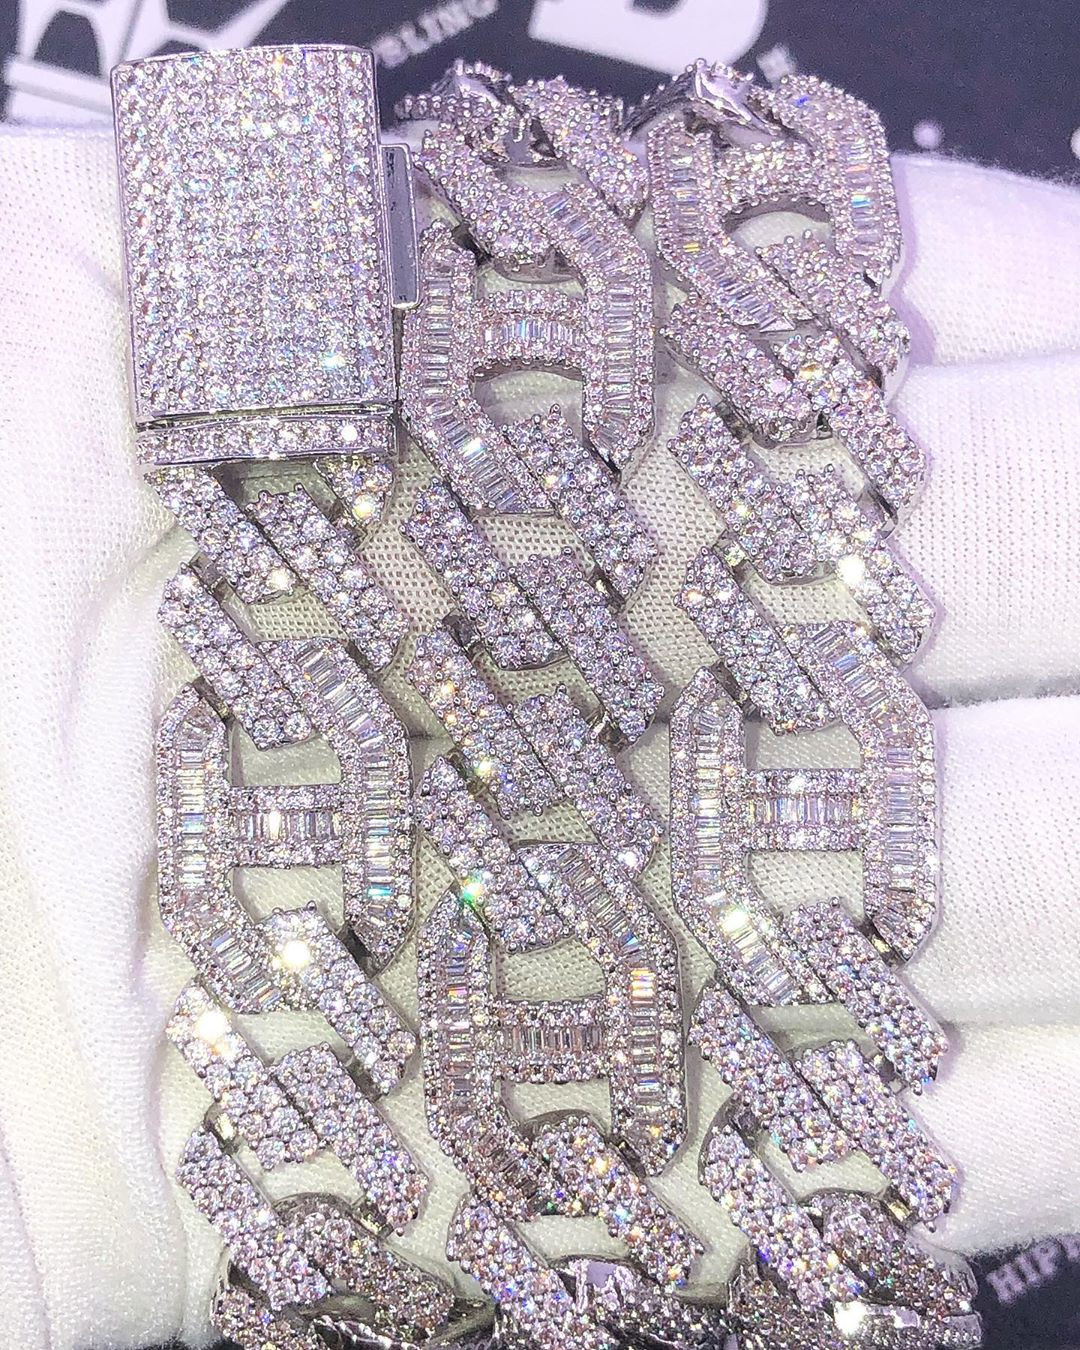 Brand new ice, cop your own when you order from Hip Hop Bling online.